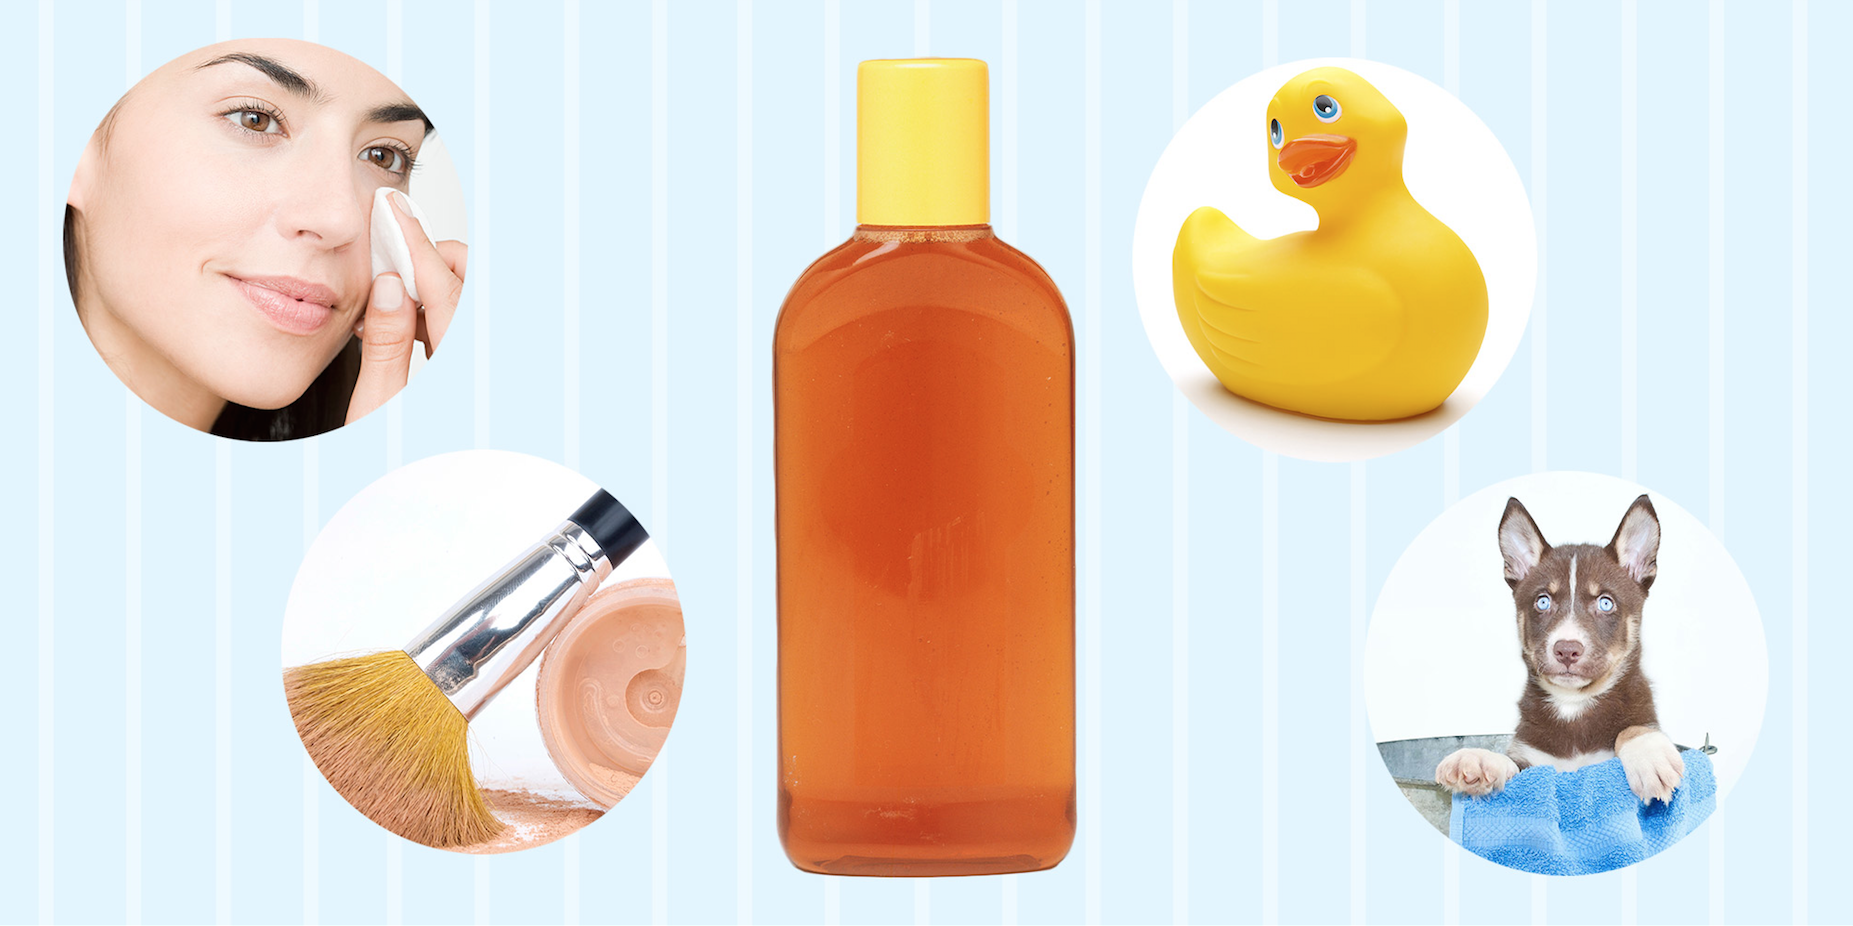 7 Genius Everyday Uses For Baby Shampoo That Youve Never Heard Of